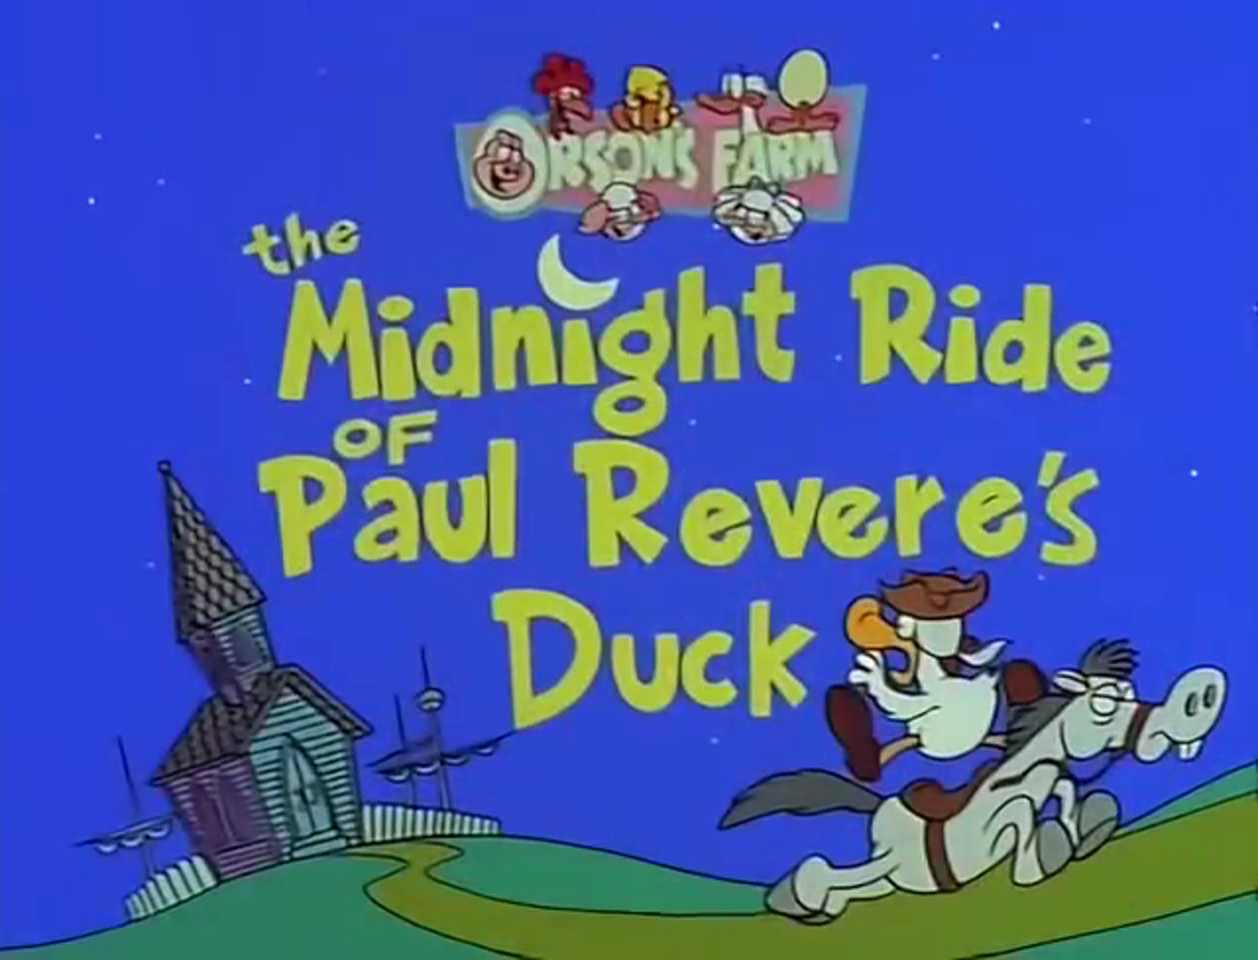 The Midnight Ride of Paul Revere's Duck